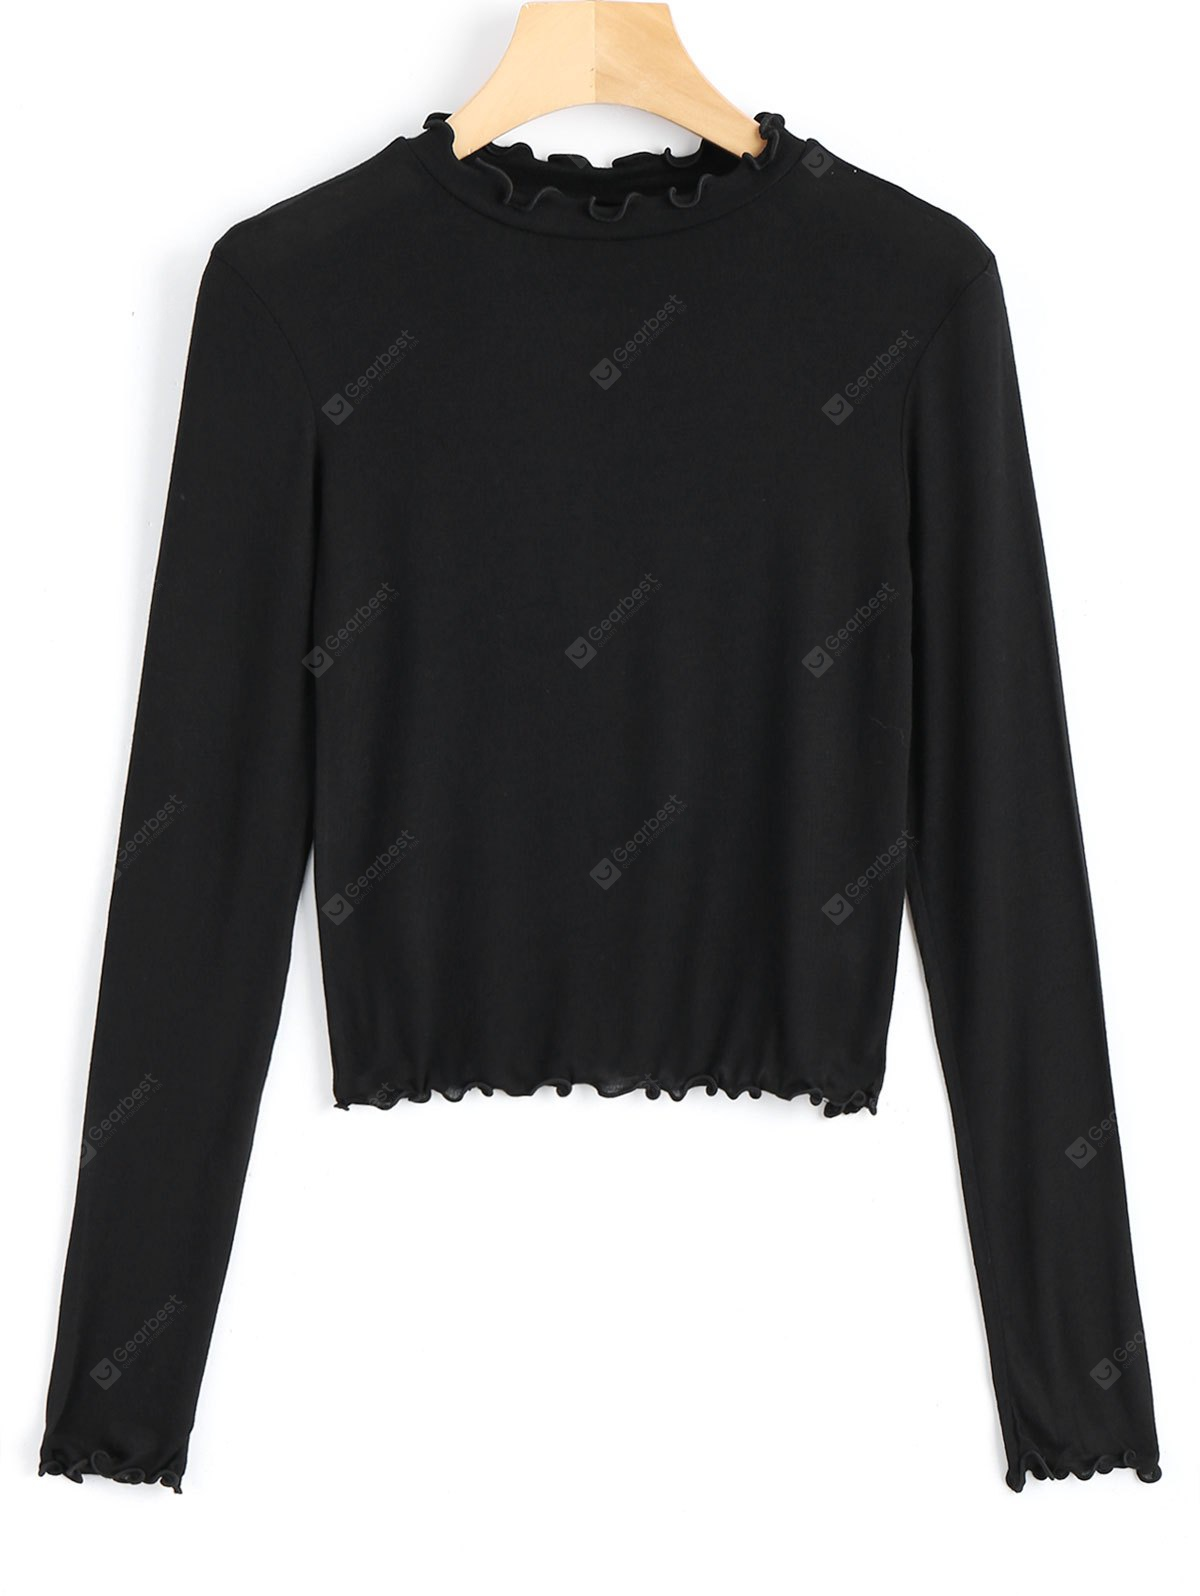 Piped Layering Long Sleeve Top